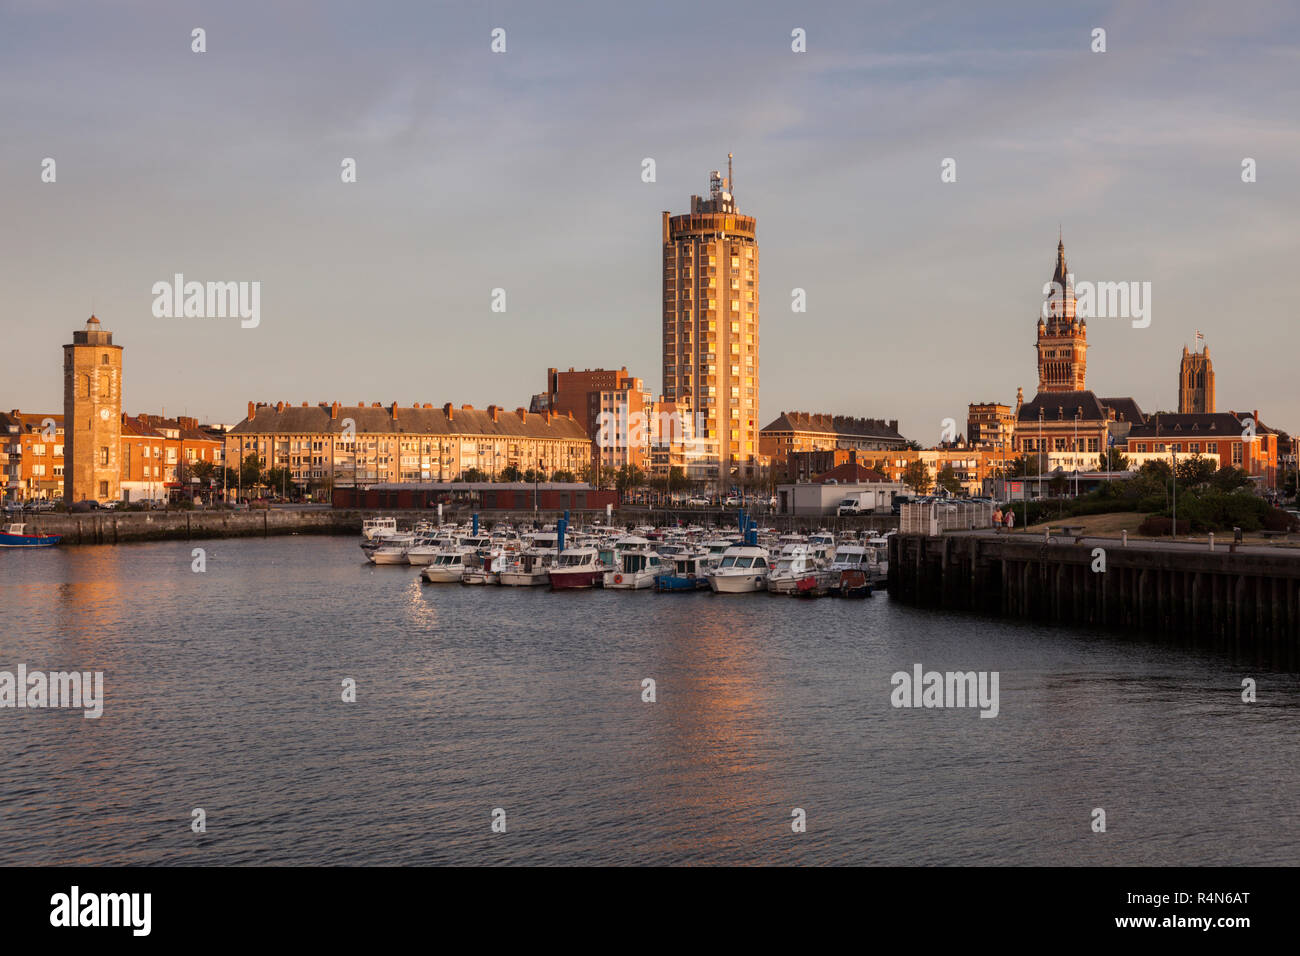 Waterfront and architecture in Dunkirk, France - Stock Image